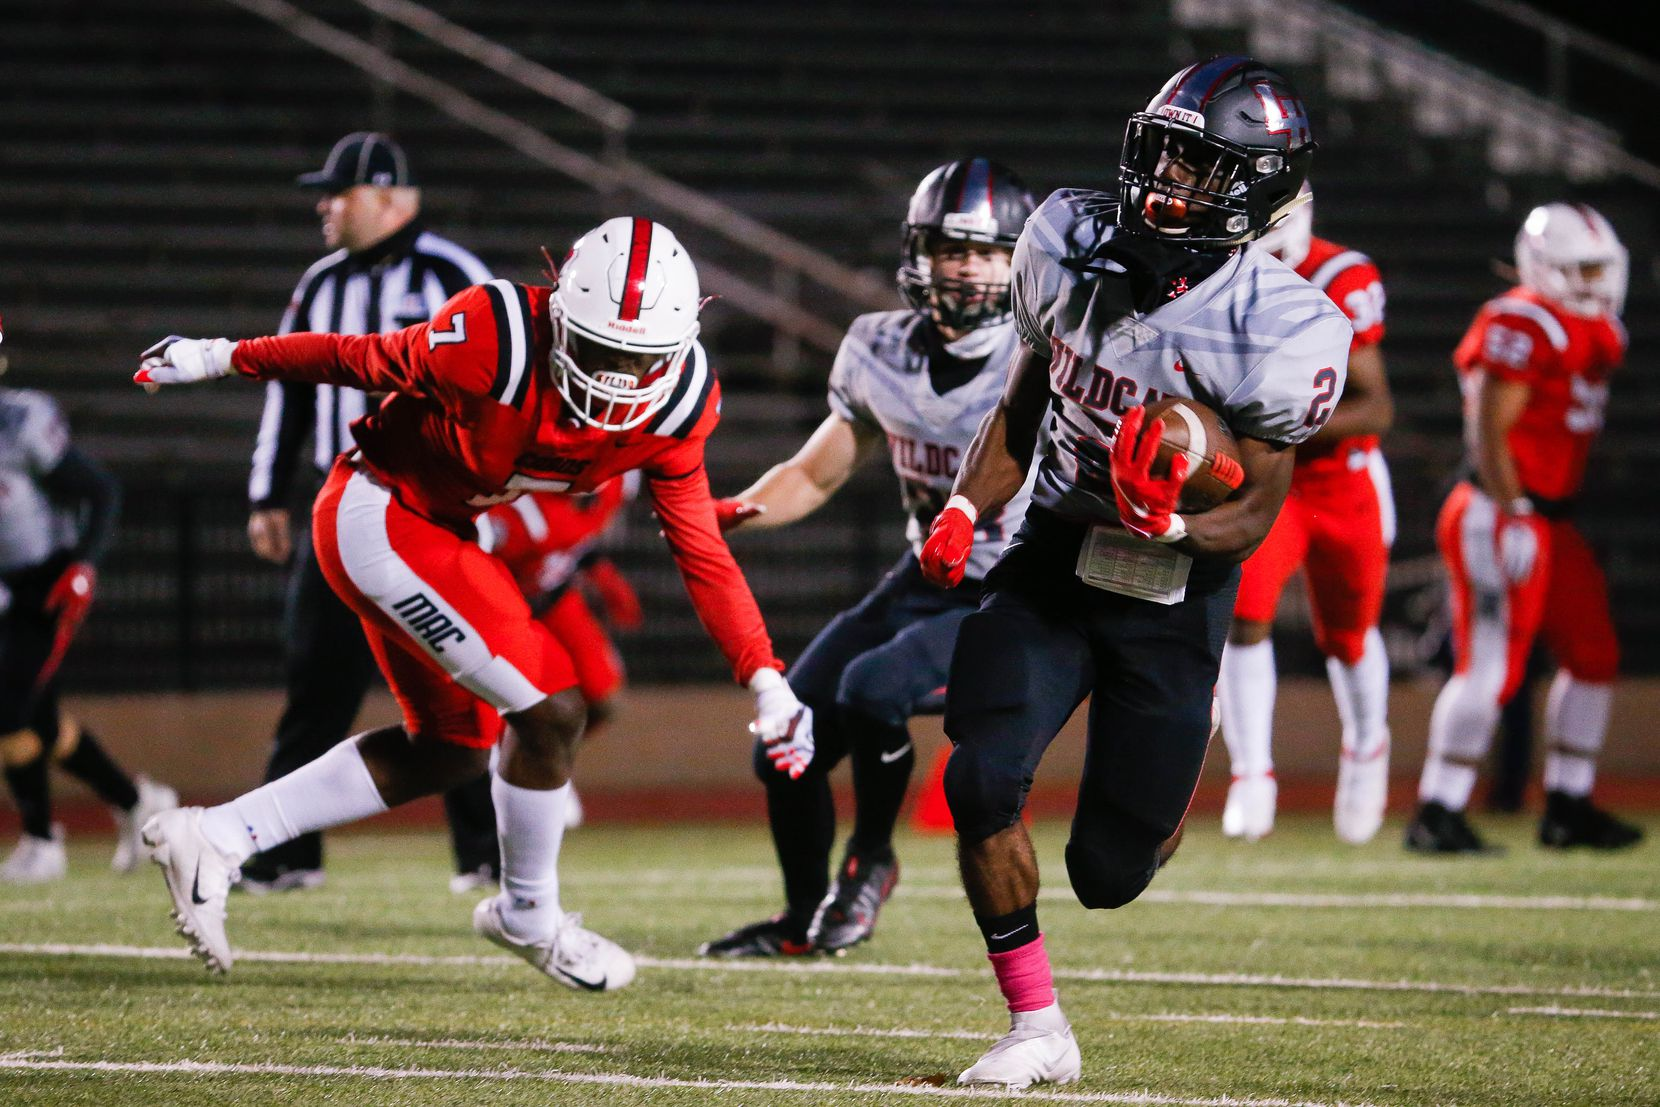 Lake Highlands Noelle Whitehead (2) slips past the Irving MacArthur defense during a the first quarter of a high school football game at Joy & Ralph Ellis Stadium in Irving on Friday, Oct. 23, 2020. (Juan Figueroa/ The Dallas Morning News)